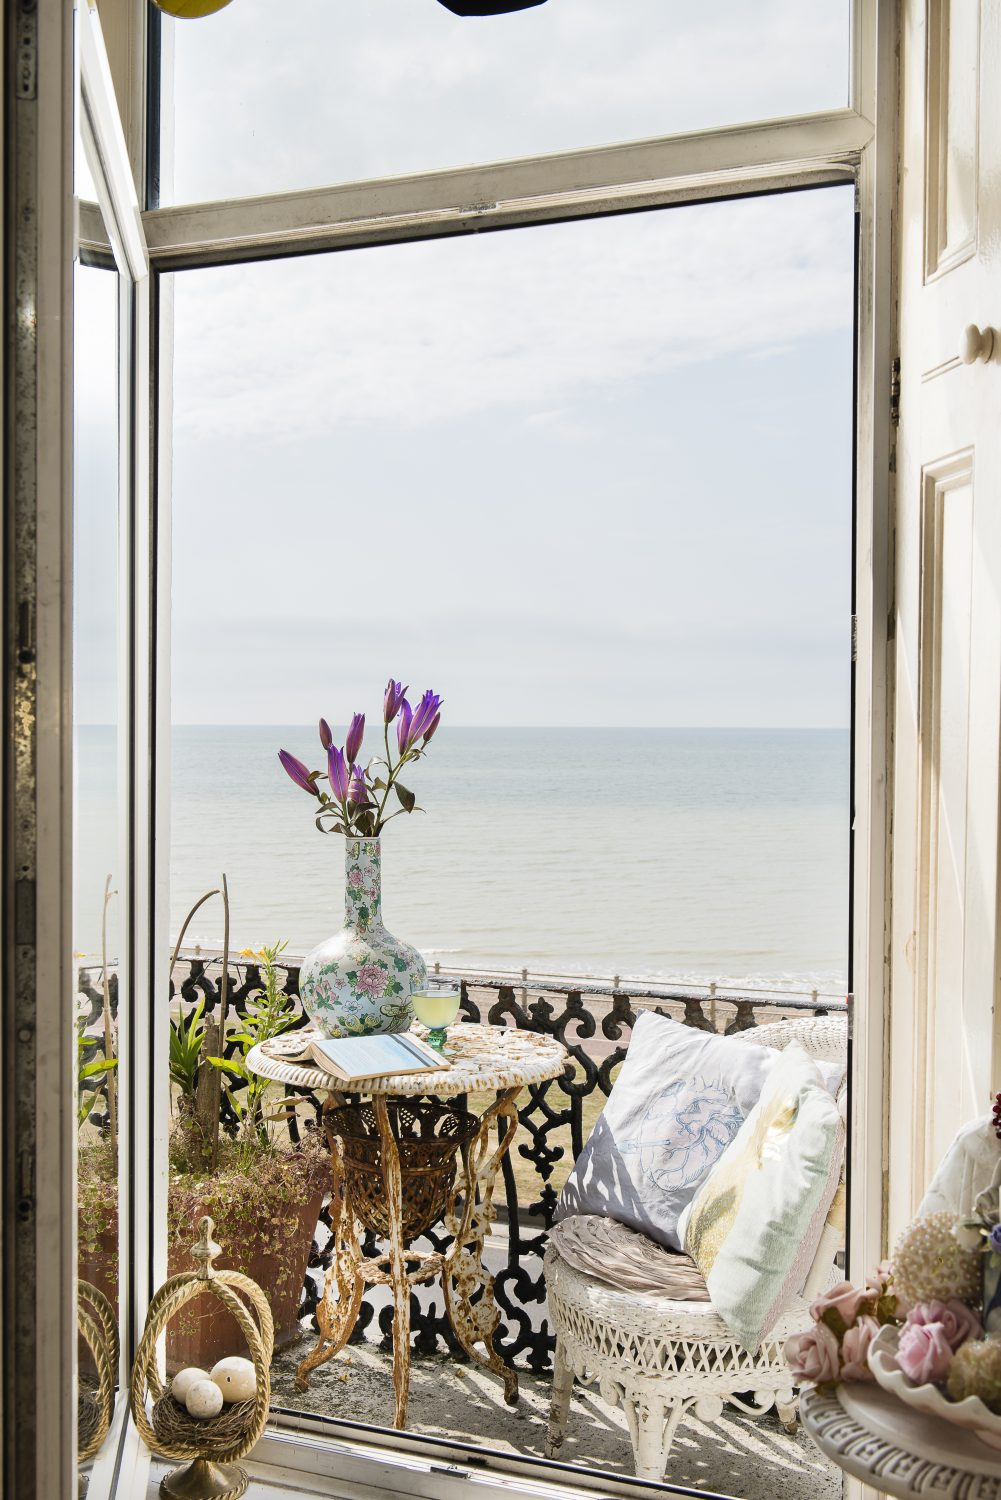 The stunning sea views from Sassy's wrought iron balcony are a constant source of inspiration and a contrast to her gloriously quirky style inside